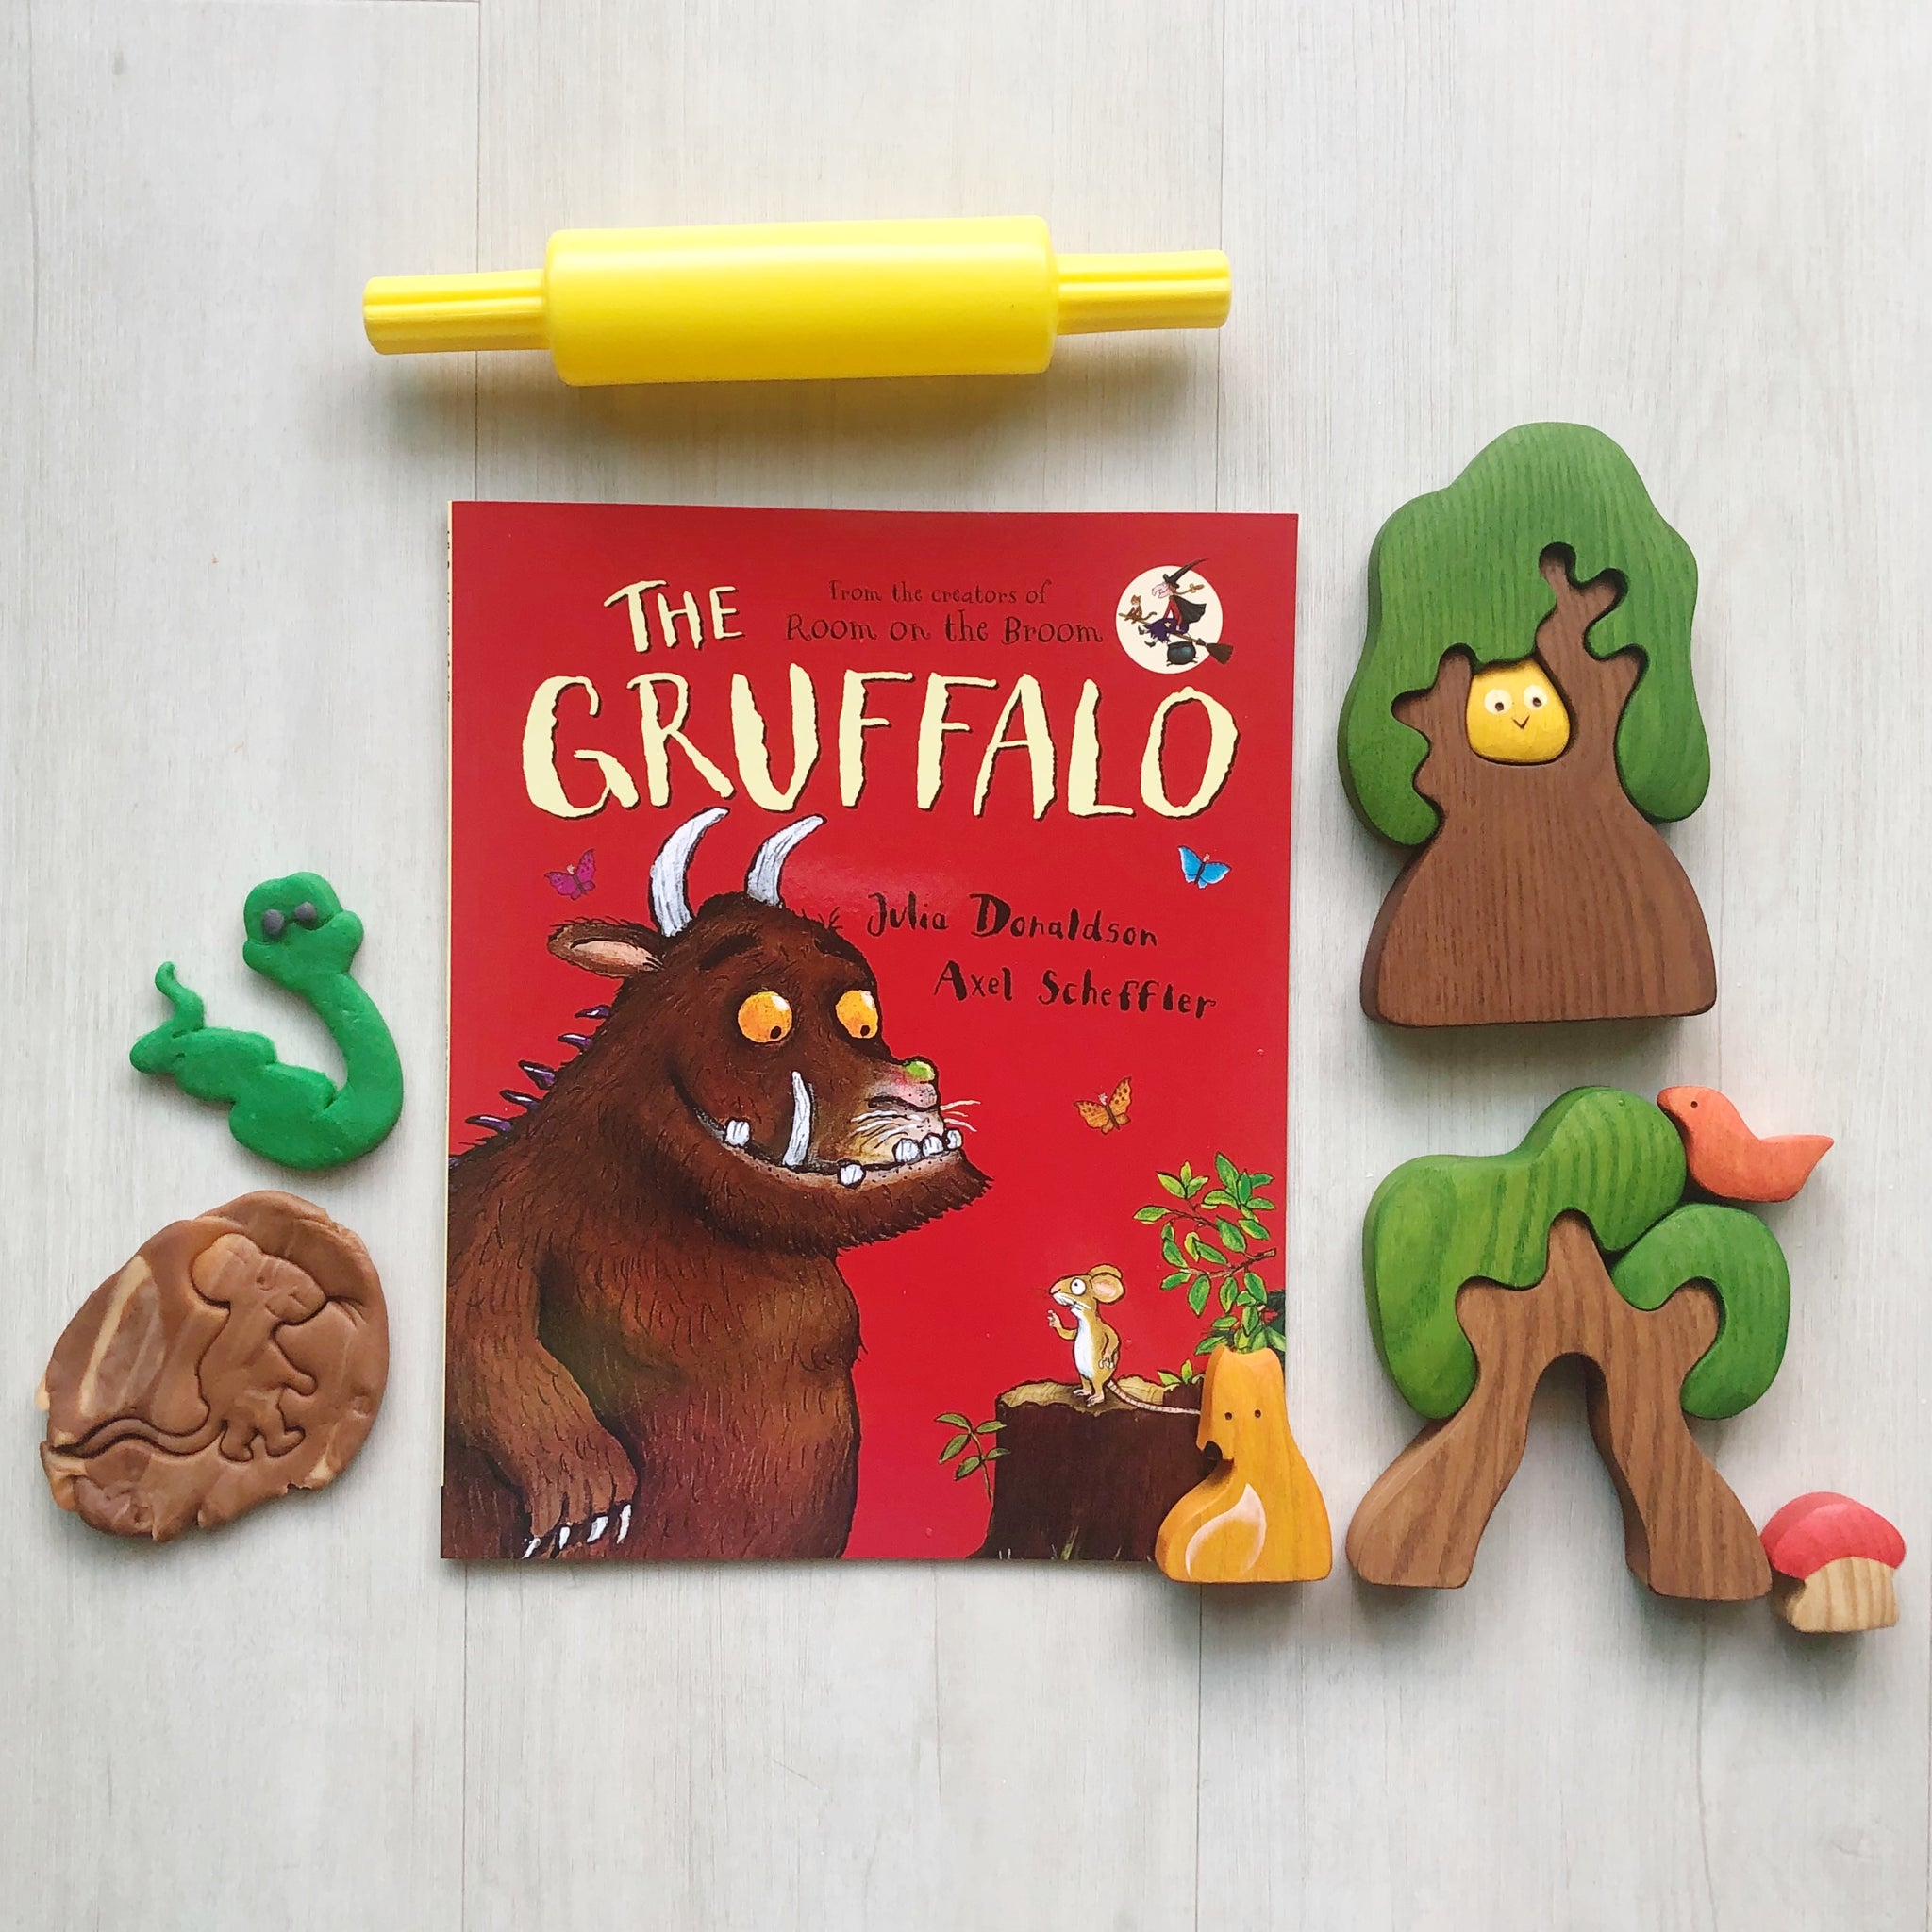 Storytime at Liliewoods GWC - The Gruffalo by Julia Donaldson 2 Nov